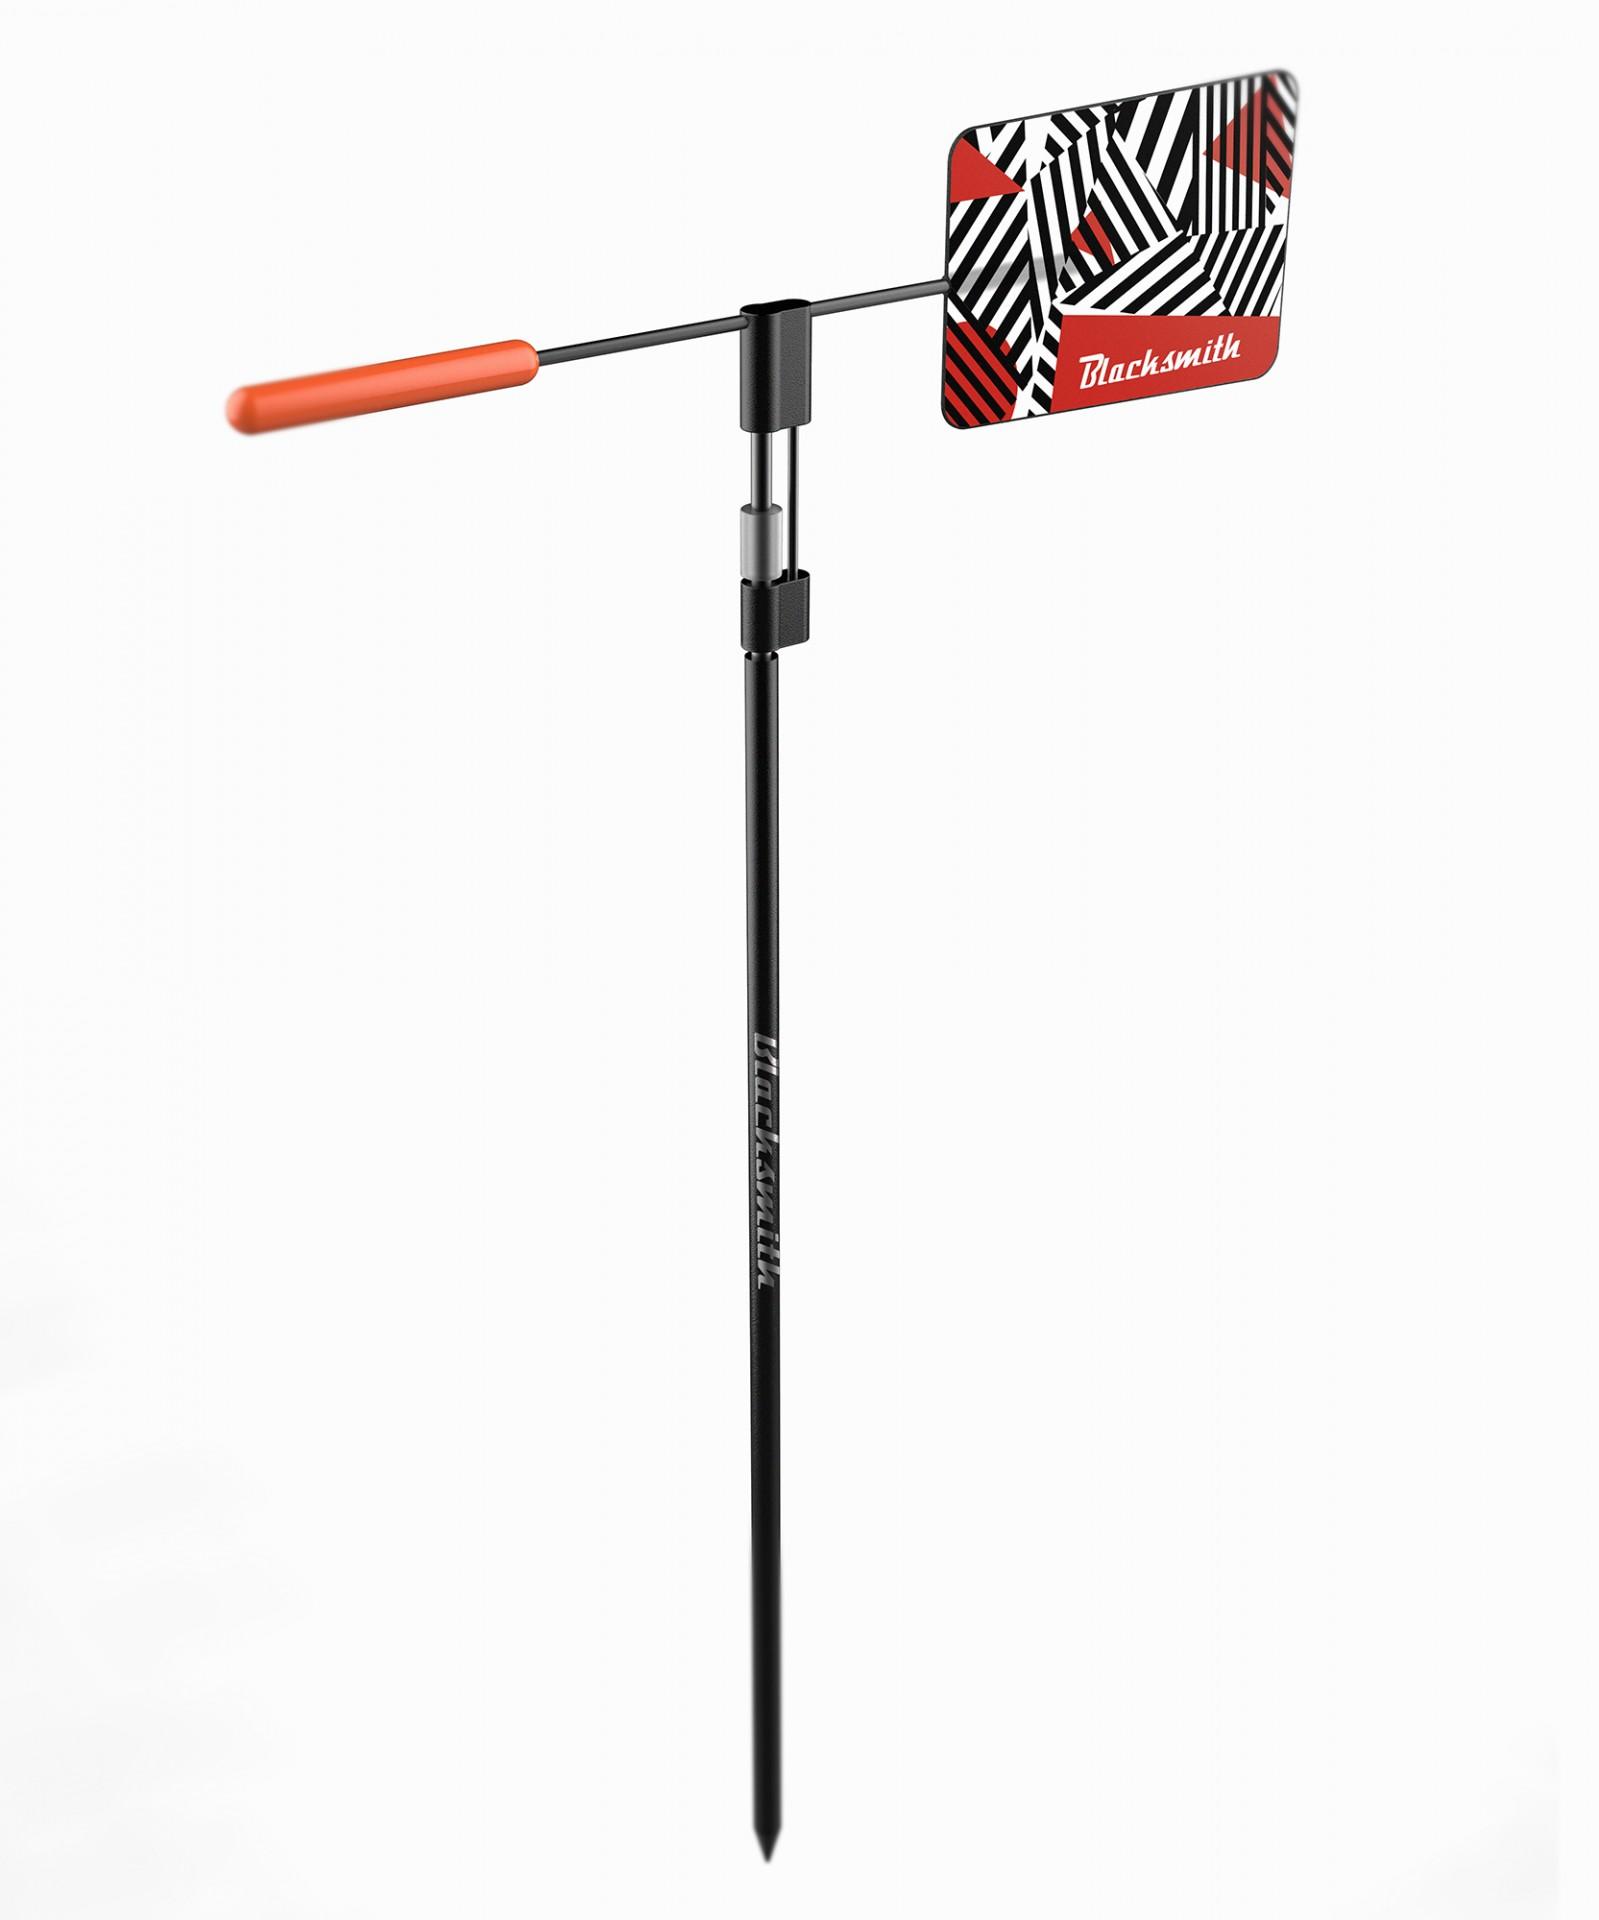 Optimist Wind Indicator - Crazy Kids - Zebra